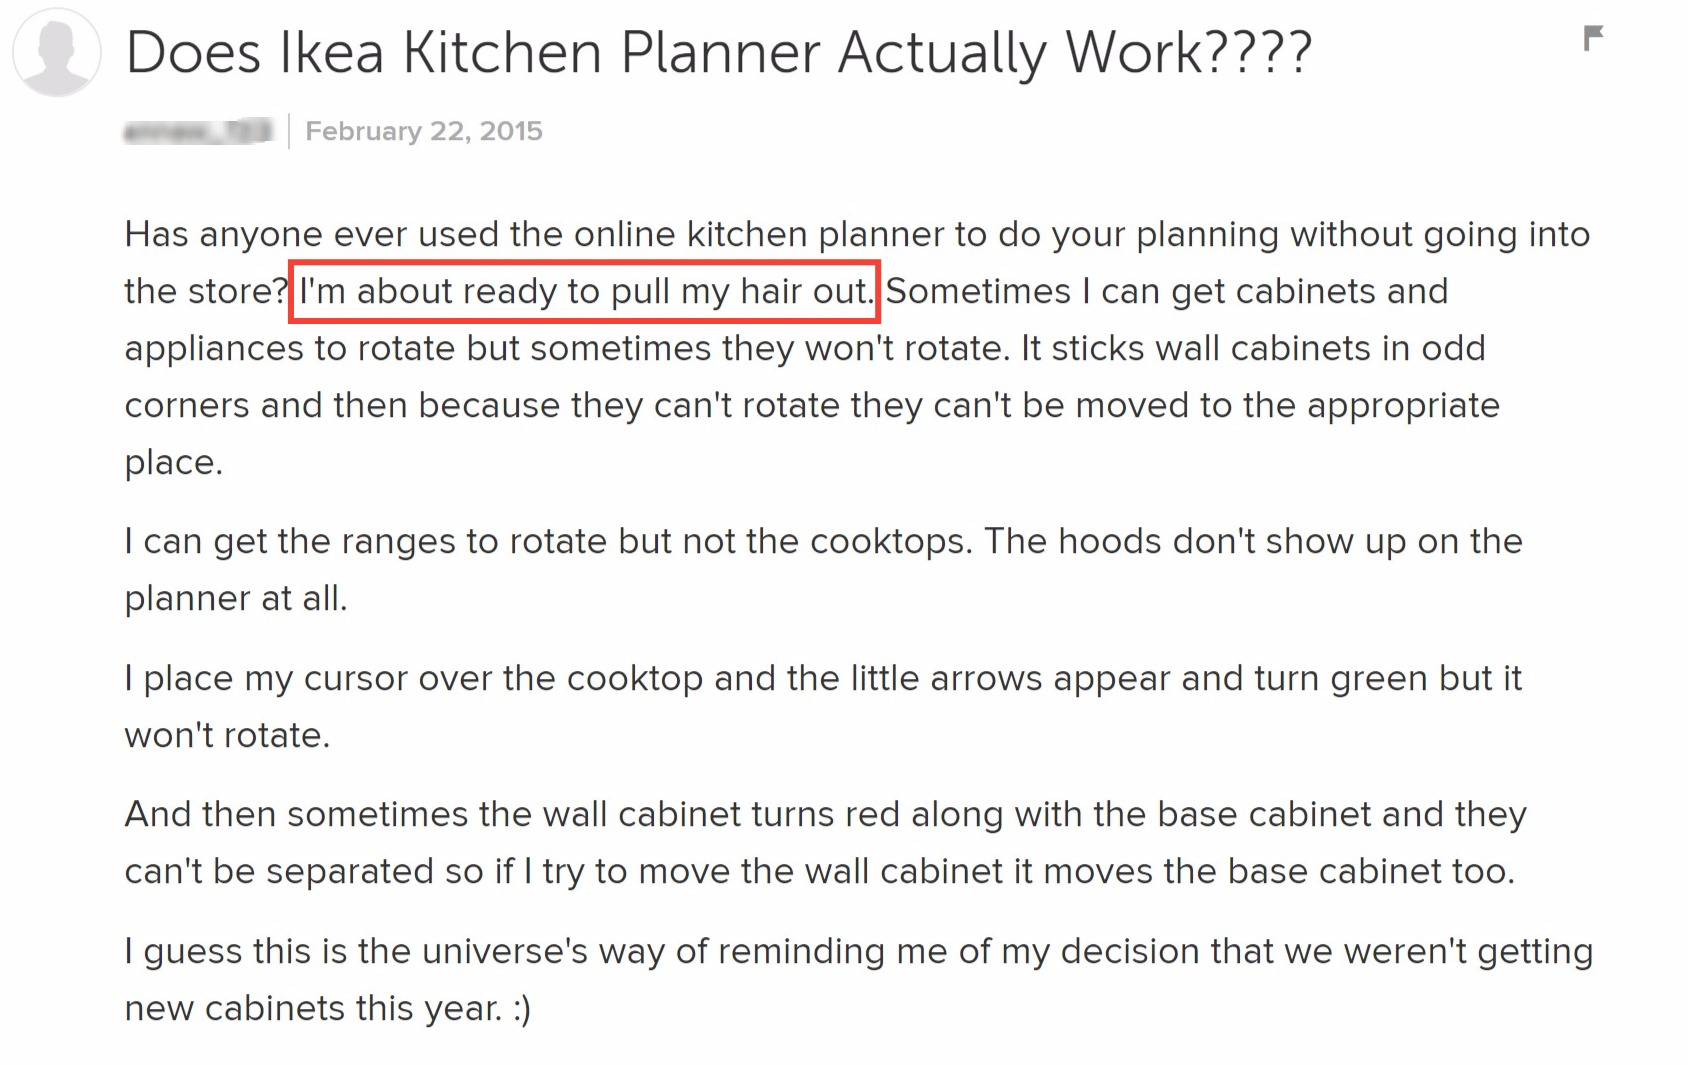 Ikea Kitchen Planner Problems